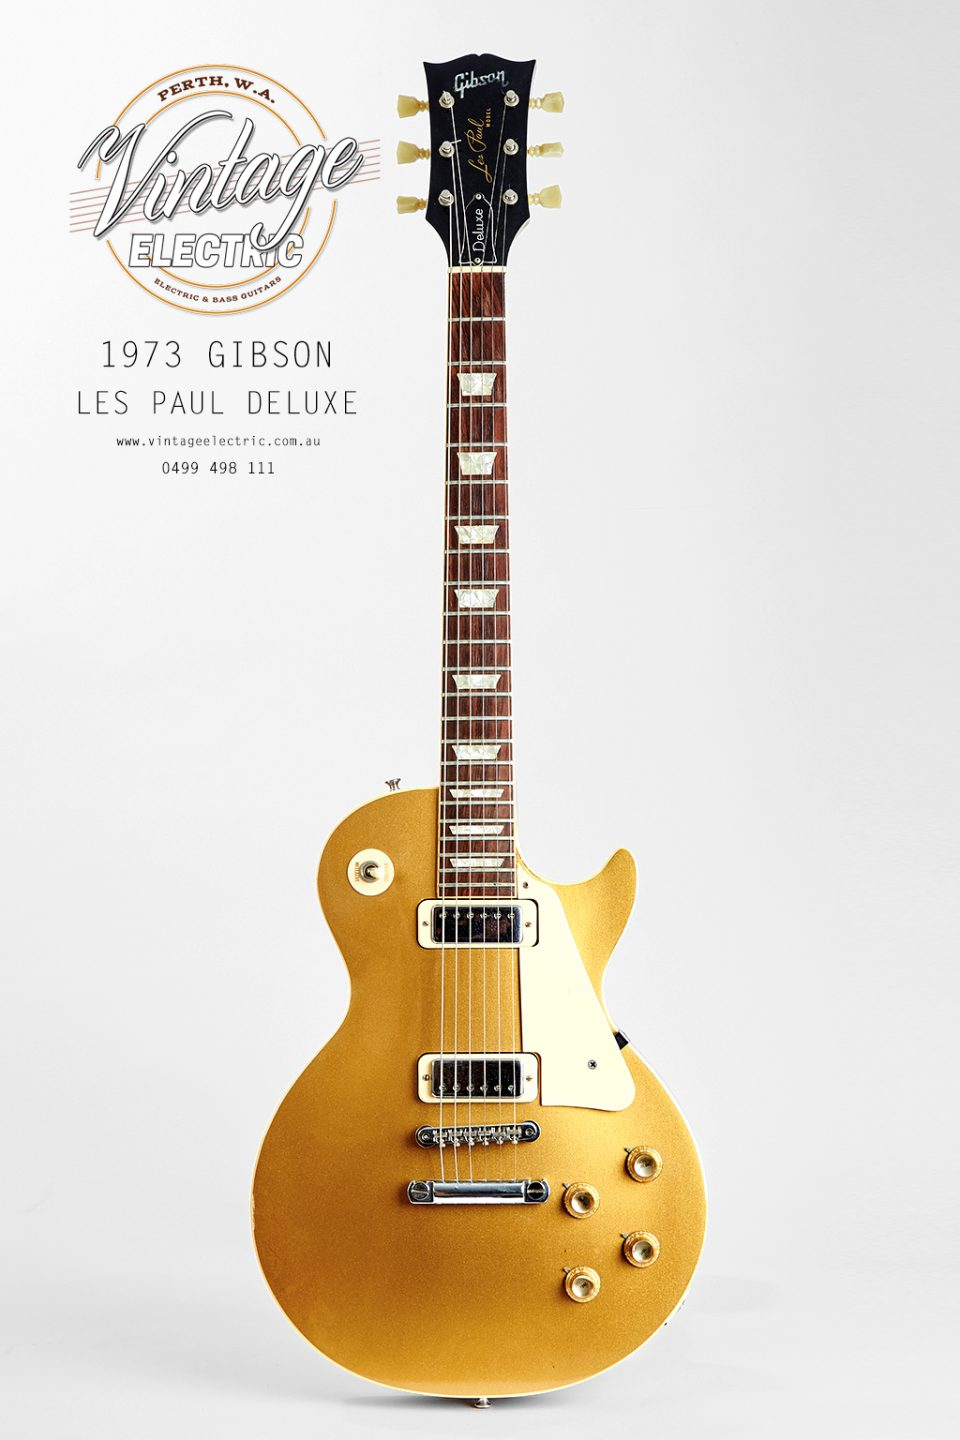 1973 Gibson Les Paul Goldtop Deluxe USA